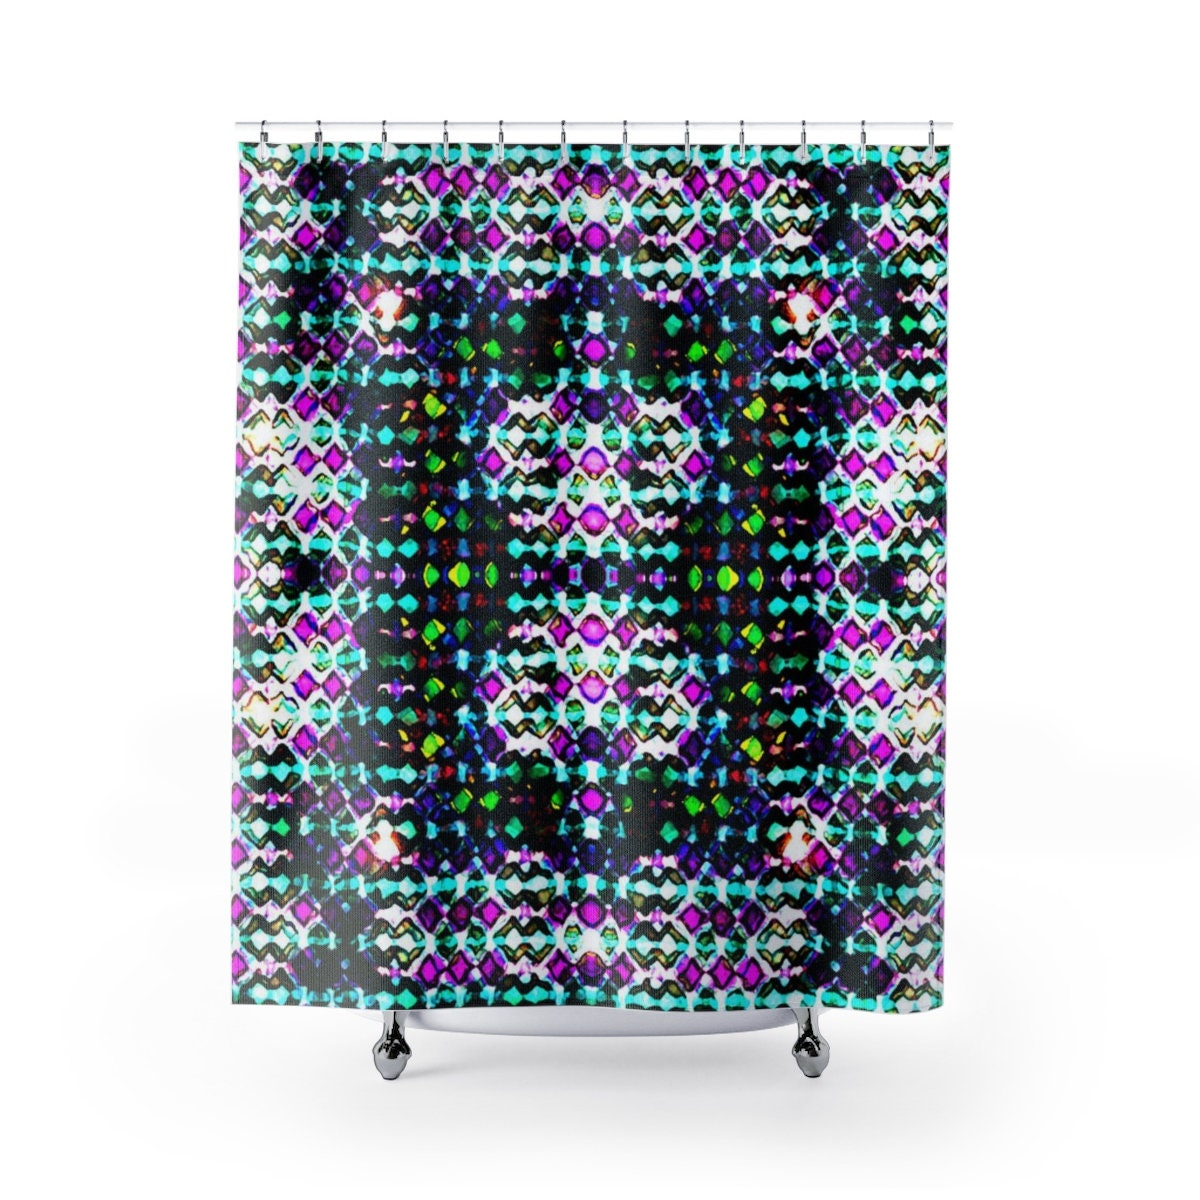 Crown 8 Cloth Shower Curtains Regal Inspired Dynamic Print Moderately Busy Design Colorful But Not Garish Great Gift